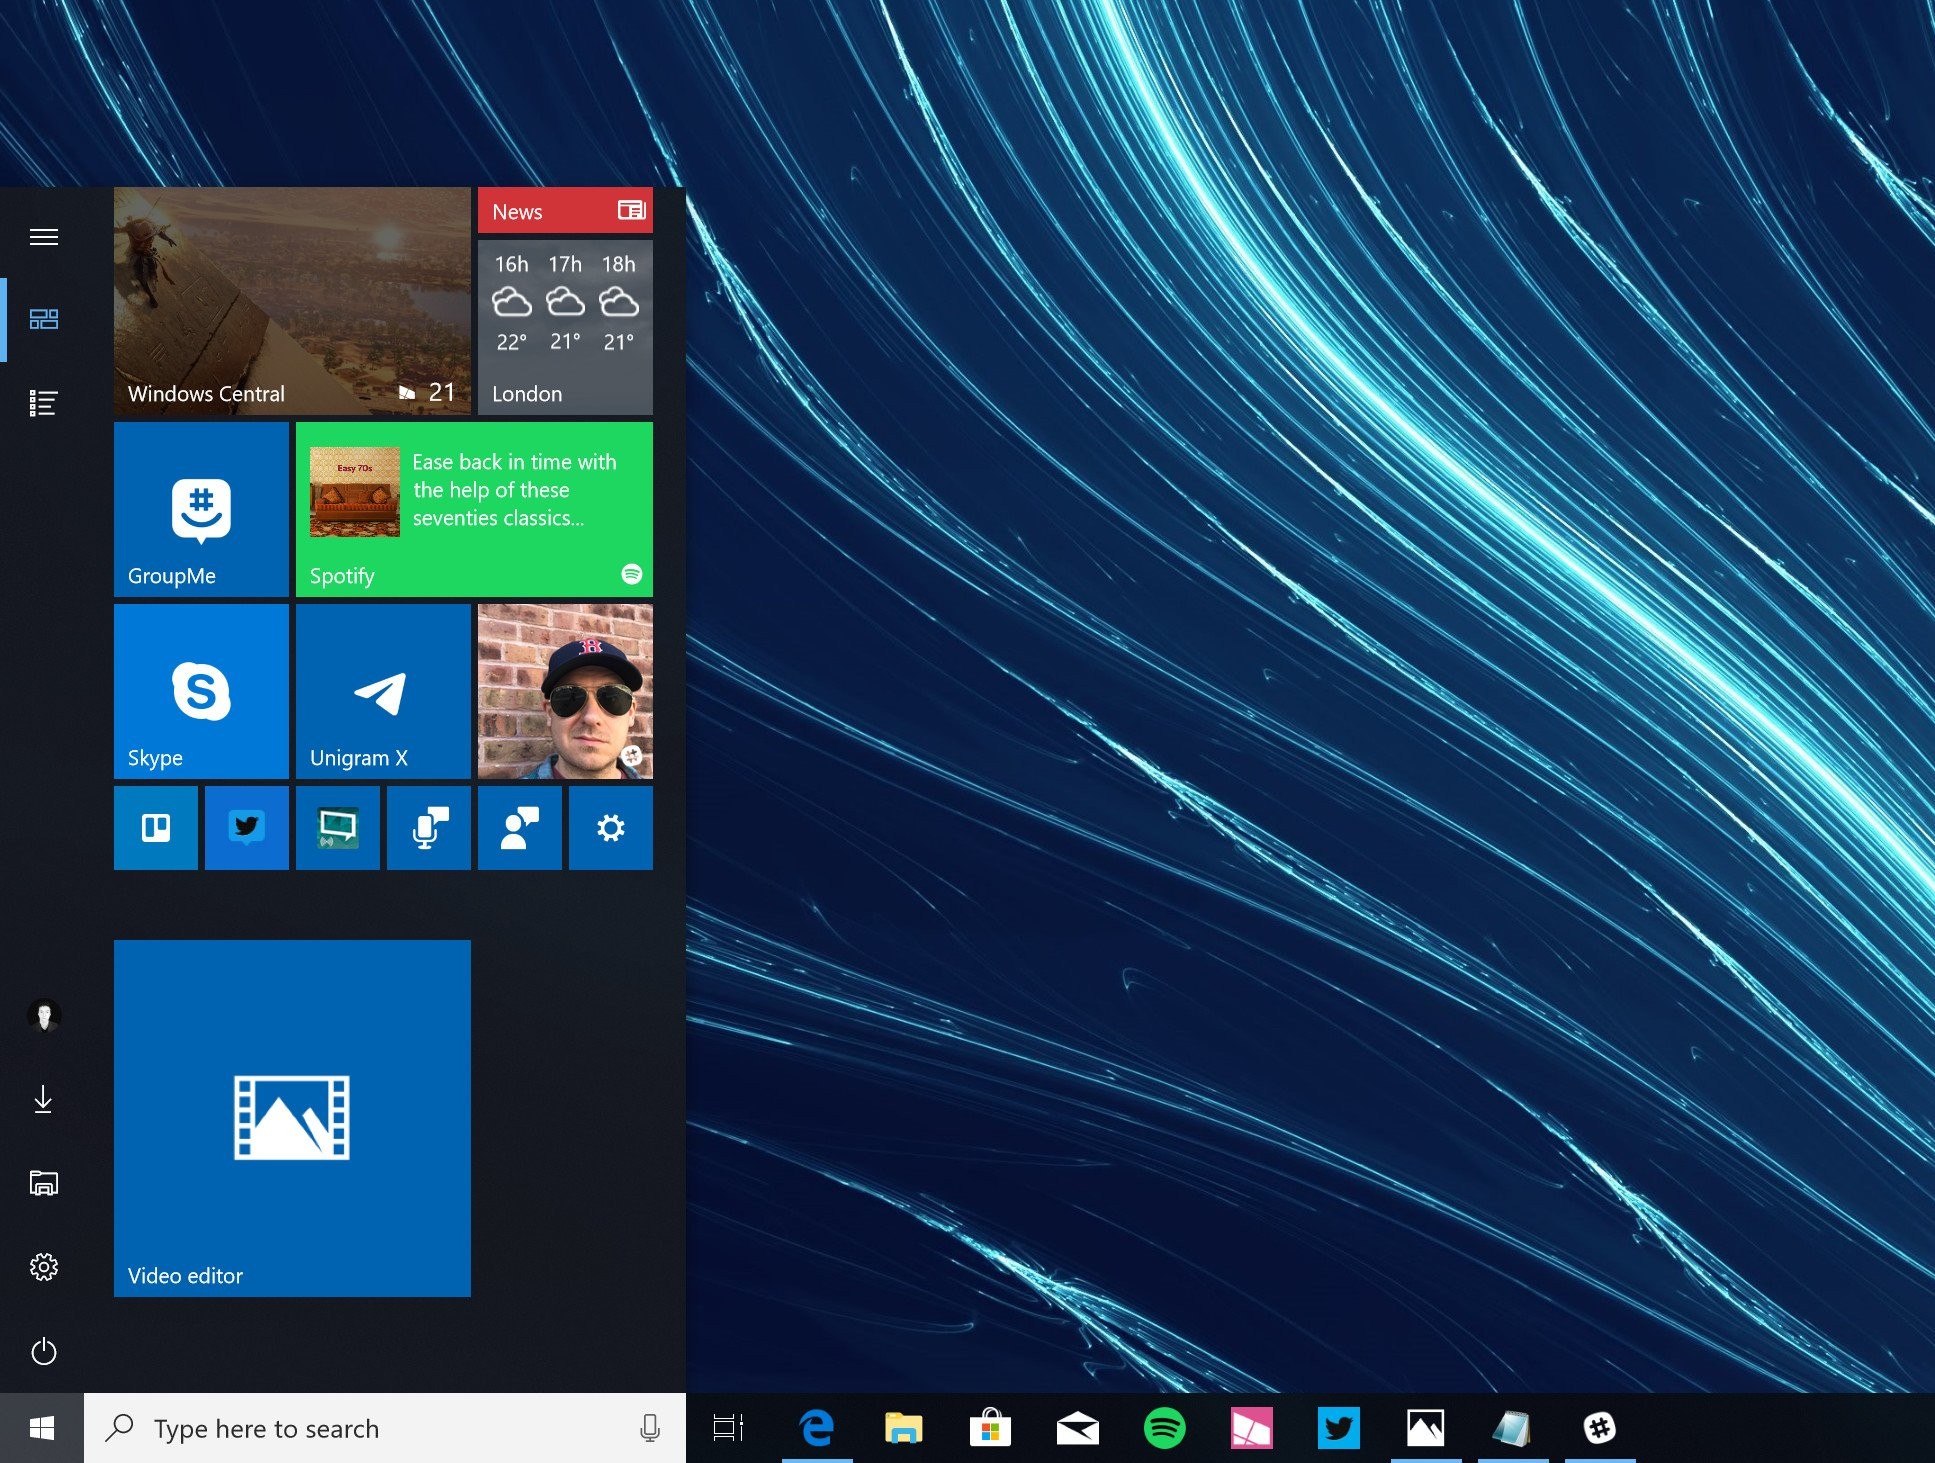 Microsoft's new Windows 10 'Video editor' is really just ...